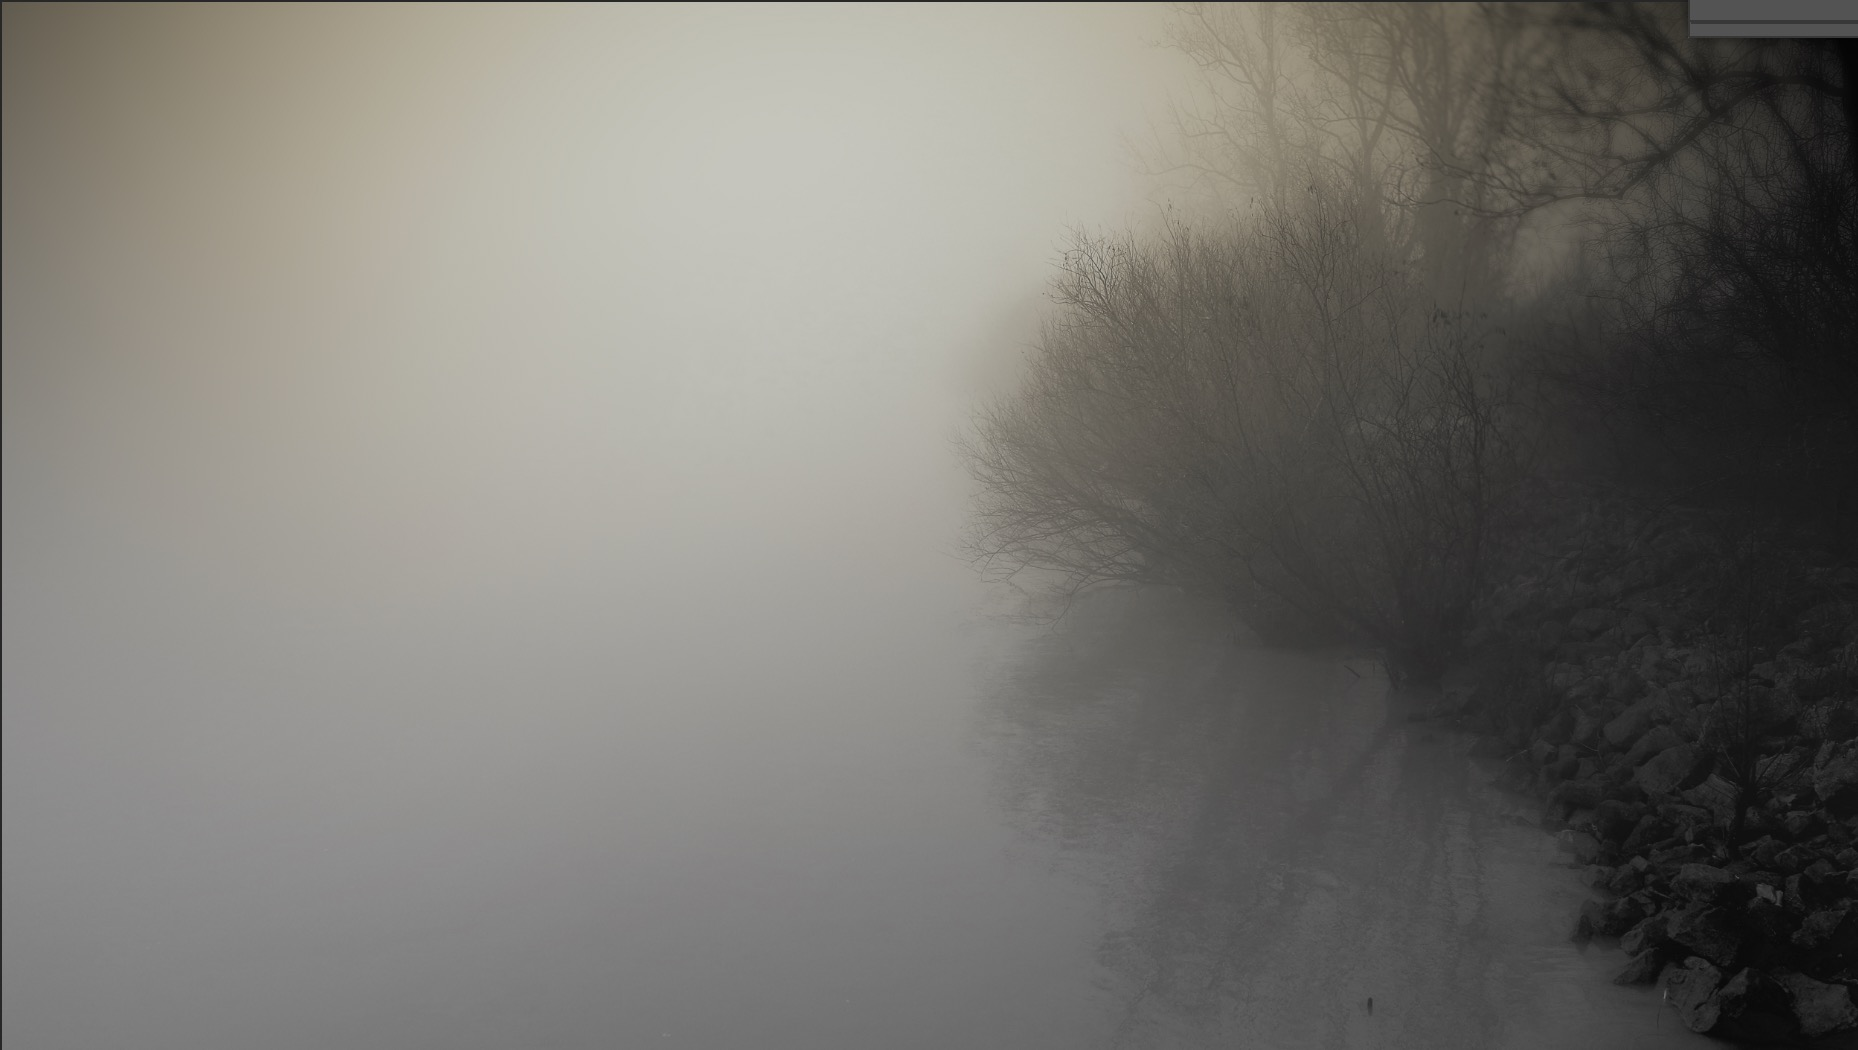 Foggy shot of a bush near a lake.